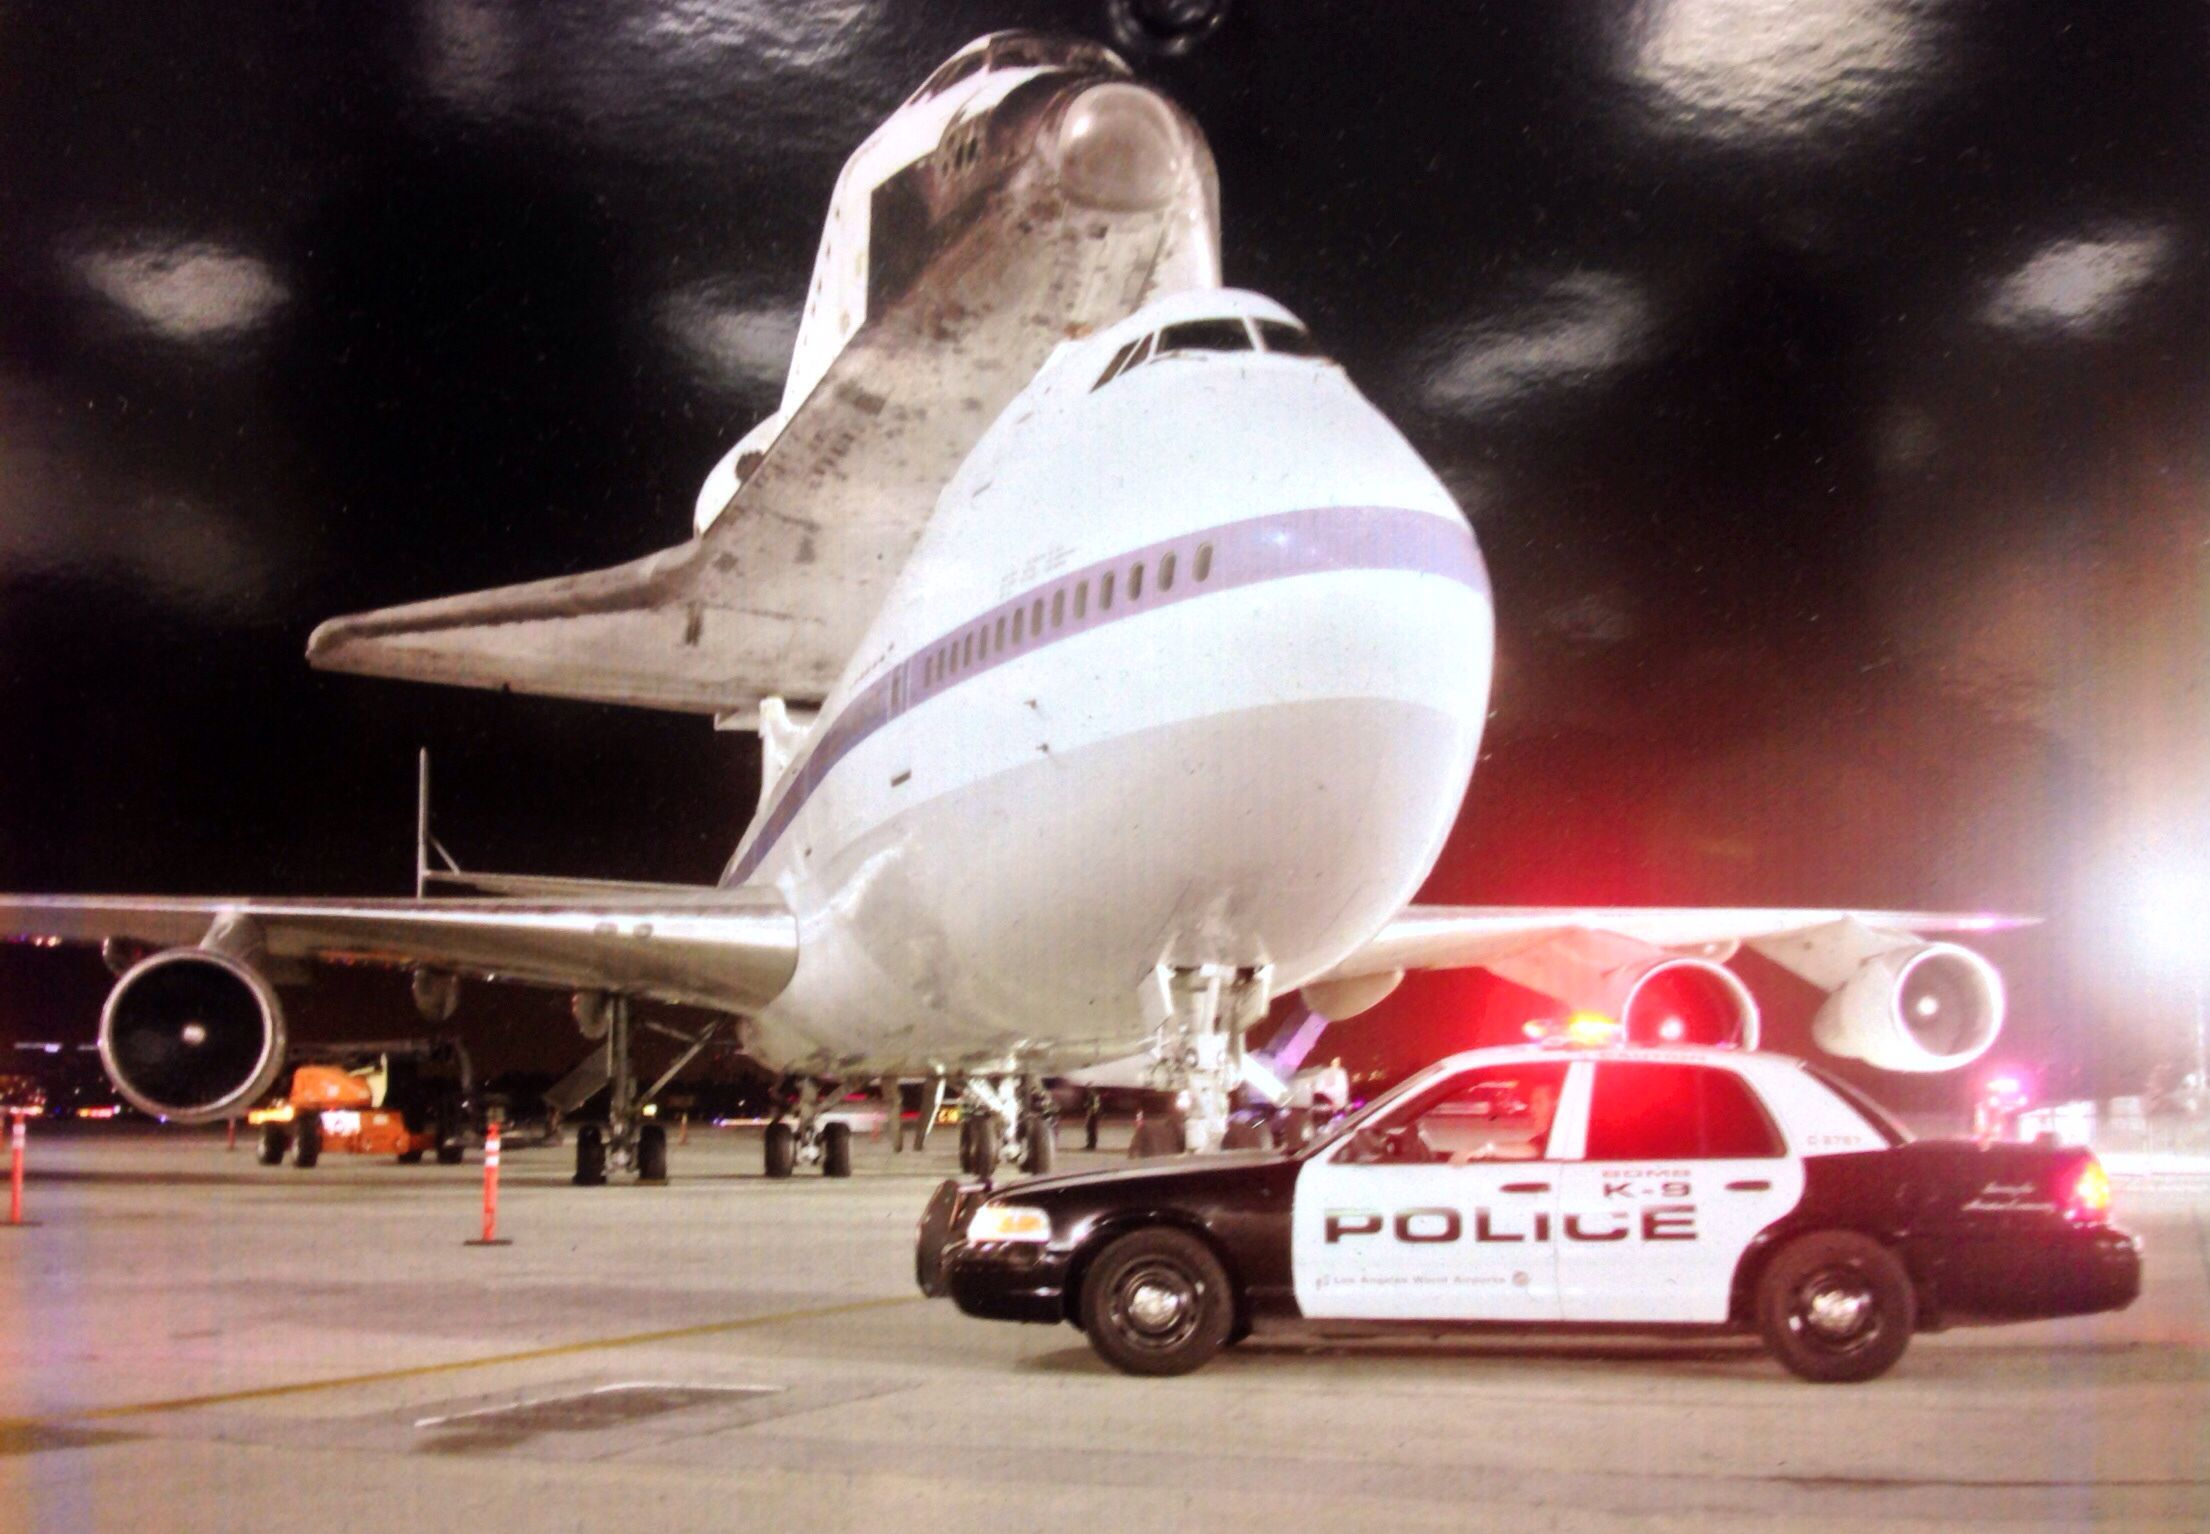 Laxpd The Space Shuttle Los Angeles Airport Peace Officer General Aviation